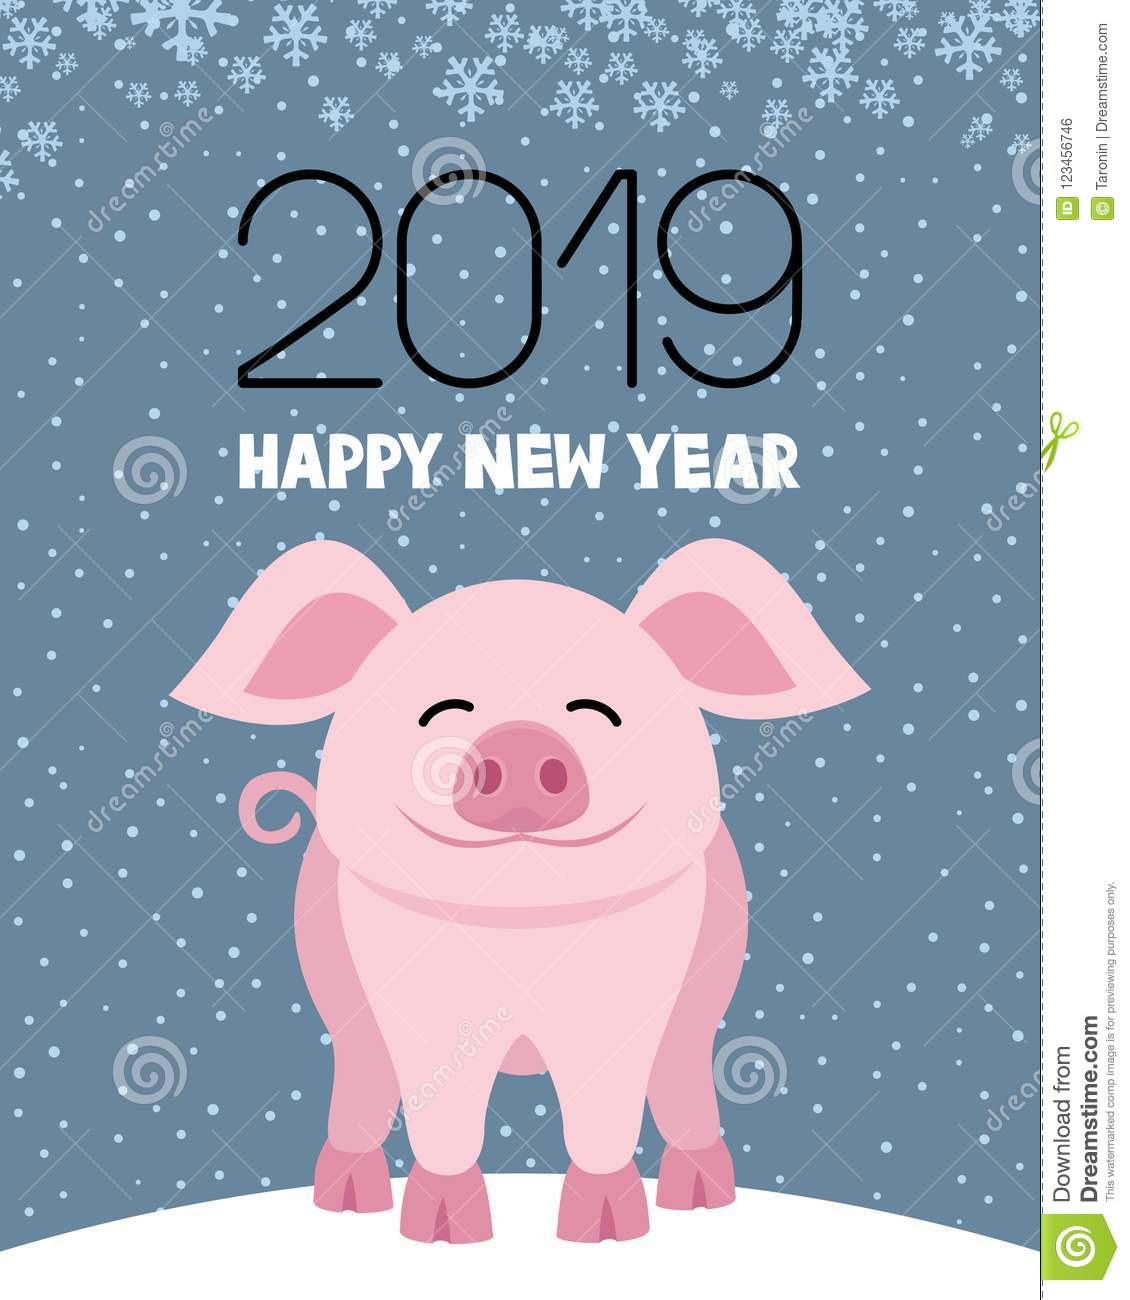 Pig symbol of the New Year.